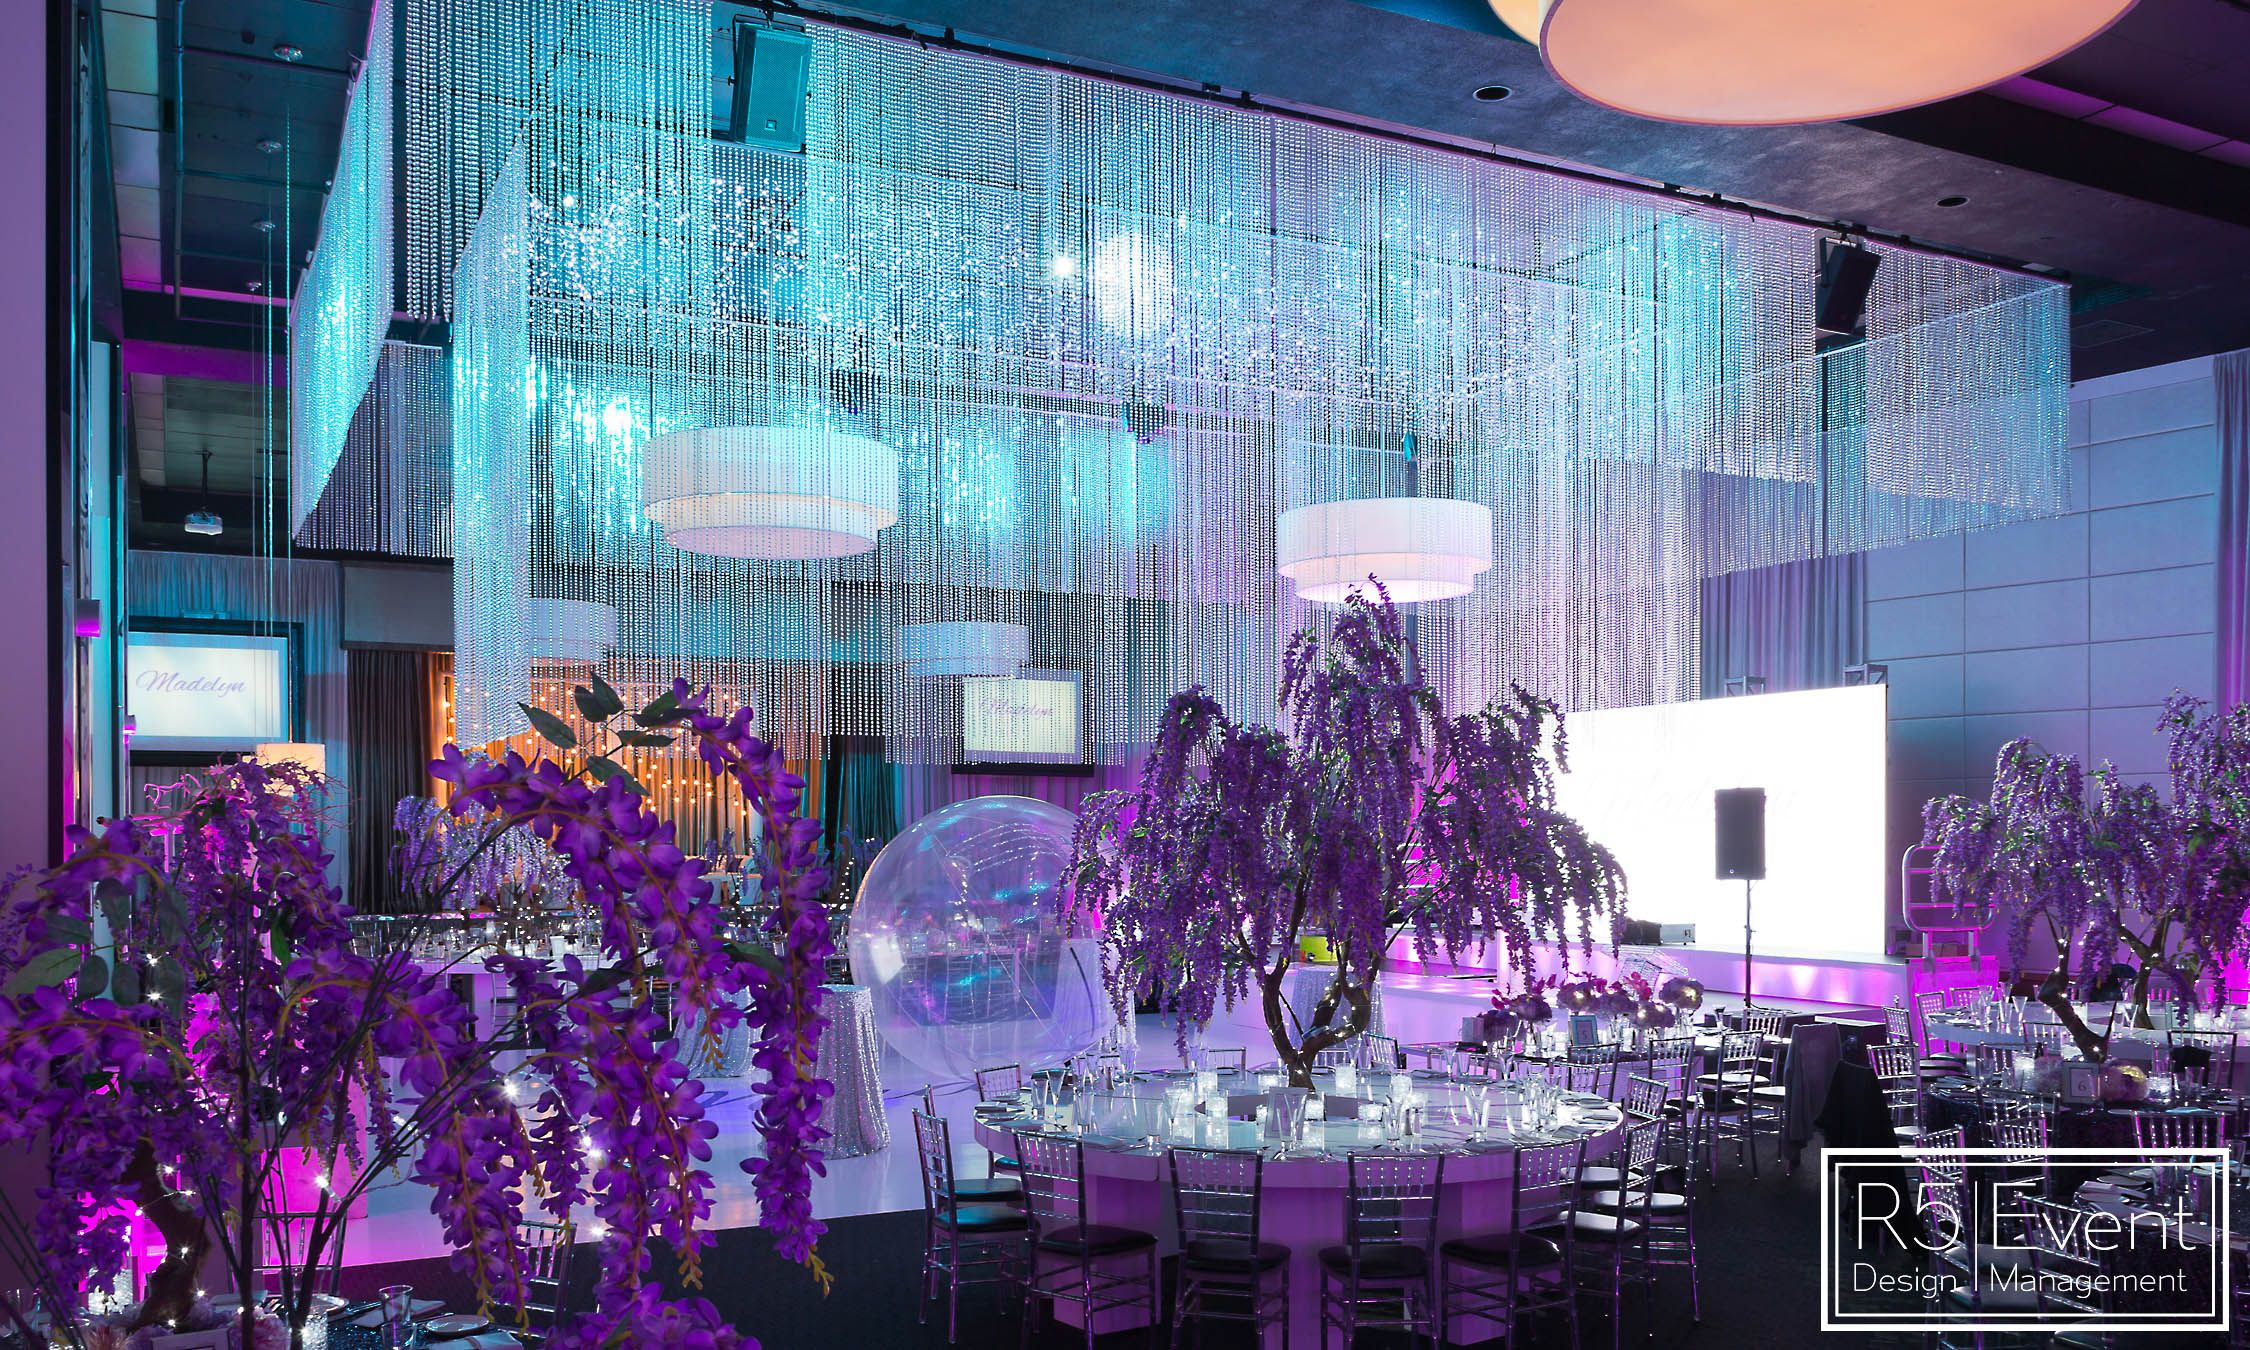 Incredible Blue And Purple Lighting For Our Avatar Enchanted Garden Bat Mitzvah By R5 Event Design Event Design Wedding Decorations Event Decor